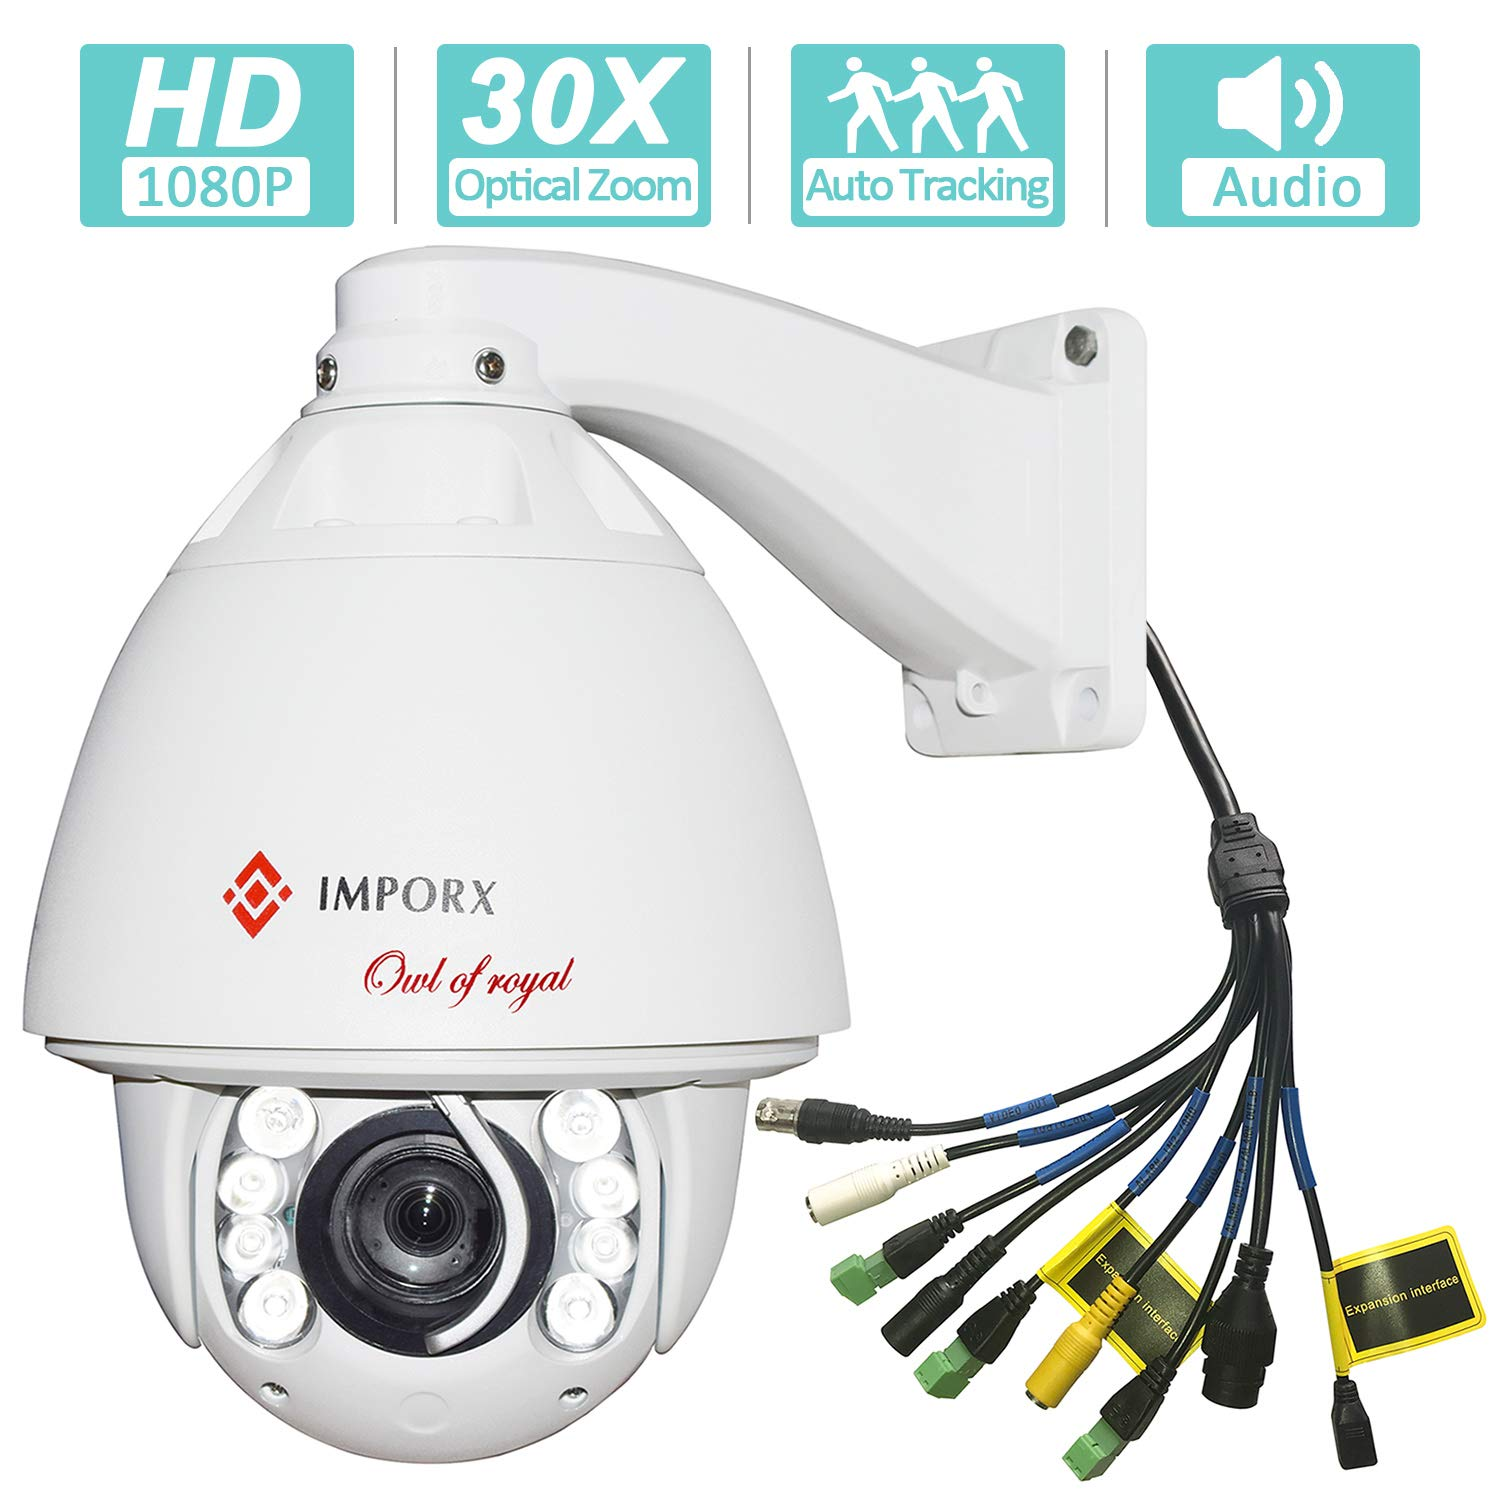 IMPORX Auto Tracking PTZ IP Camera Outdoor - 30X Optical Zoom 1080P HD Resolution - High Speed H.265 ONVIF Dome Camera, 500ft Night Vision, Support Micro SD Card and P2P(Audio & Alarm Version.)